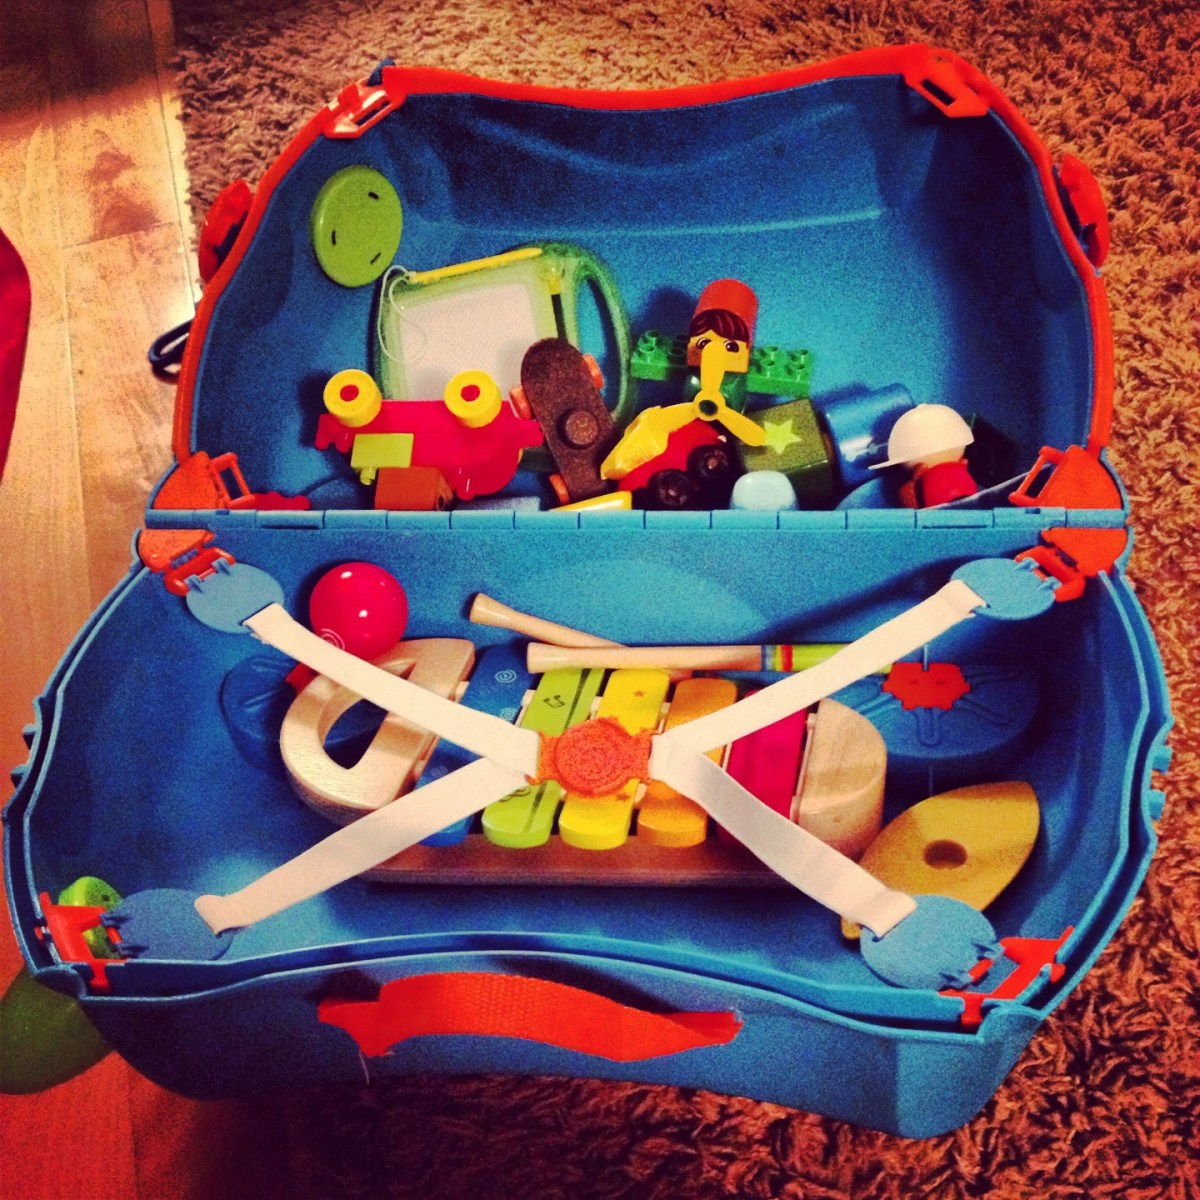 Reasons I Love The Trunki Suitcase - Fab Find Friday